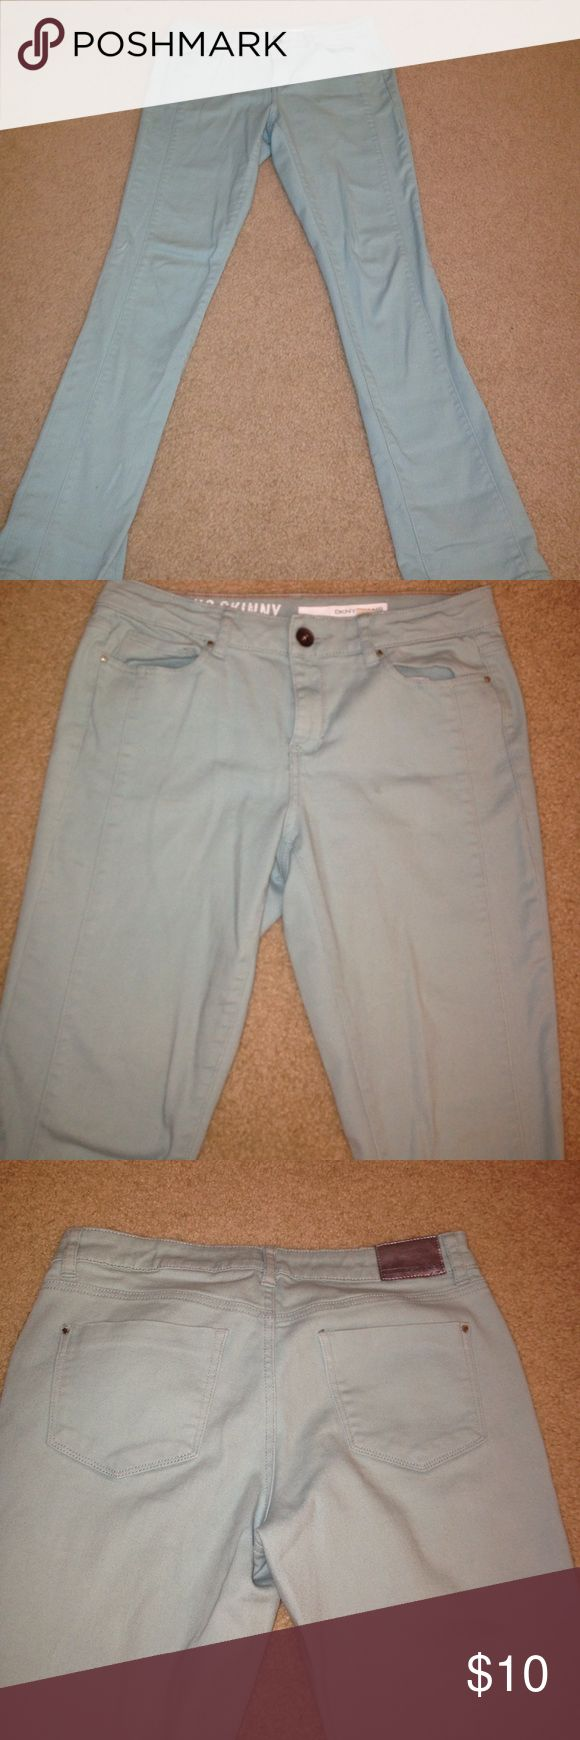 Mint green jeans In good condition, mint green, comfortable DKNY Jeans Straight Leg